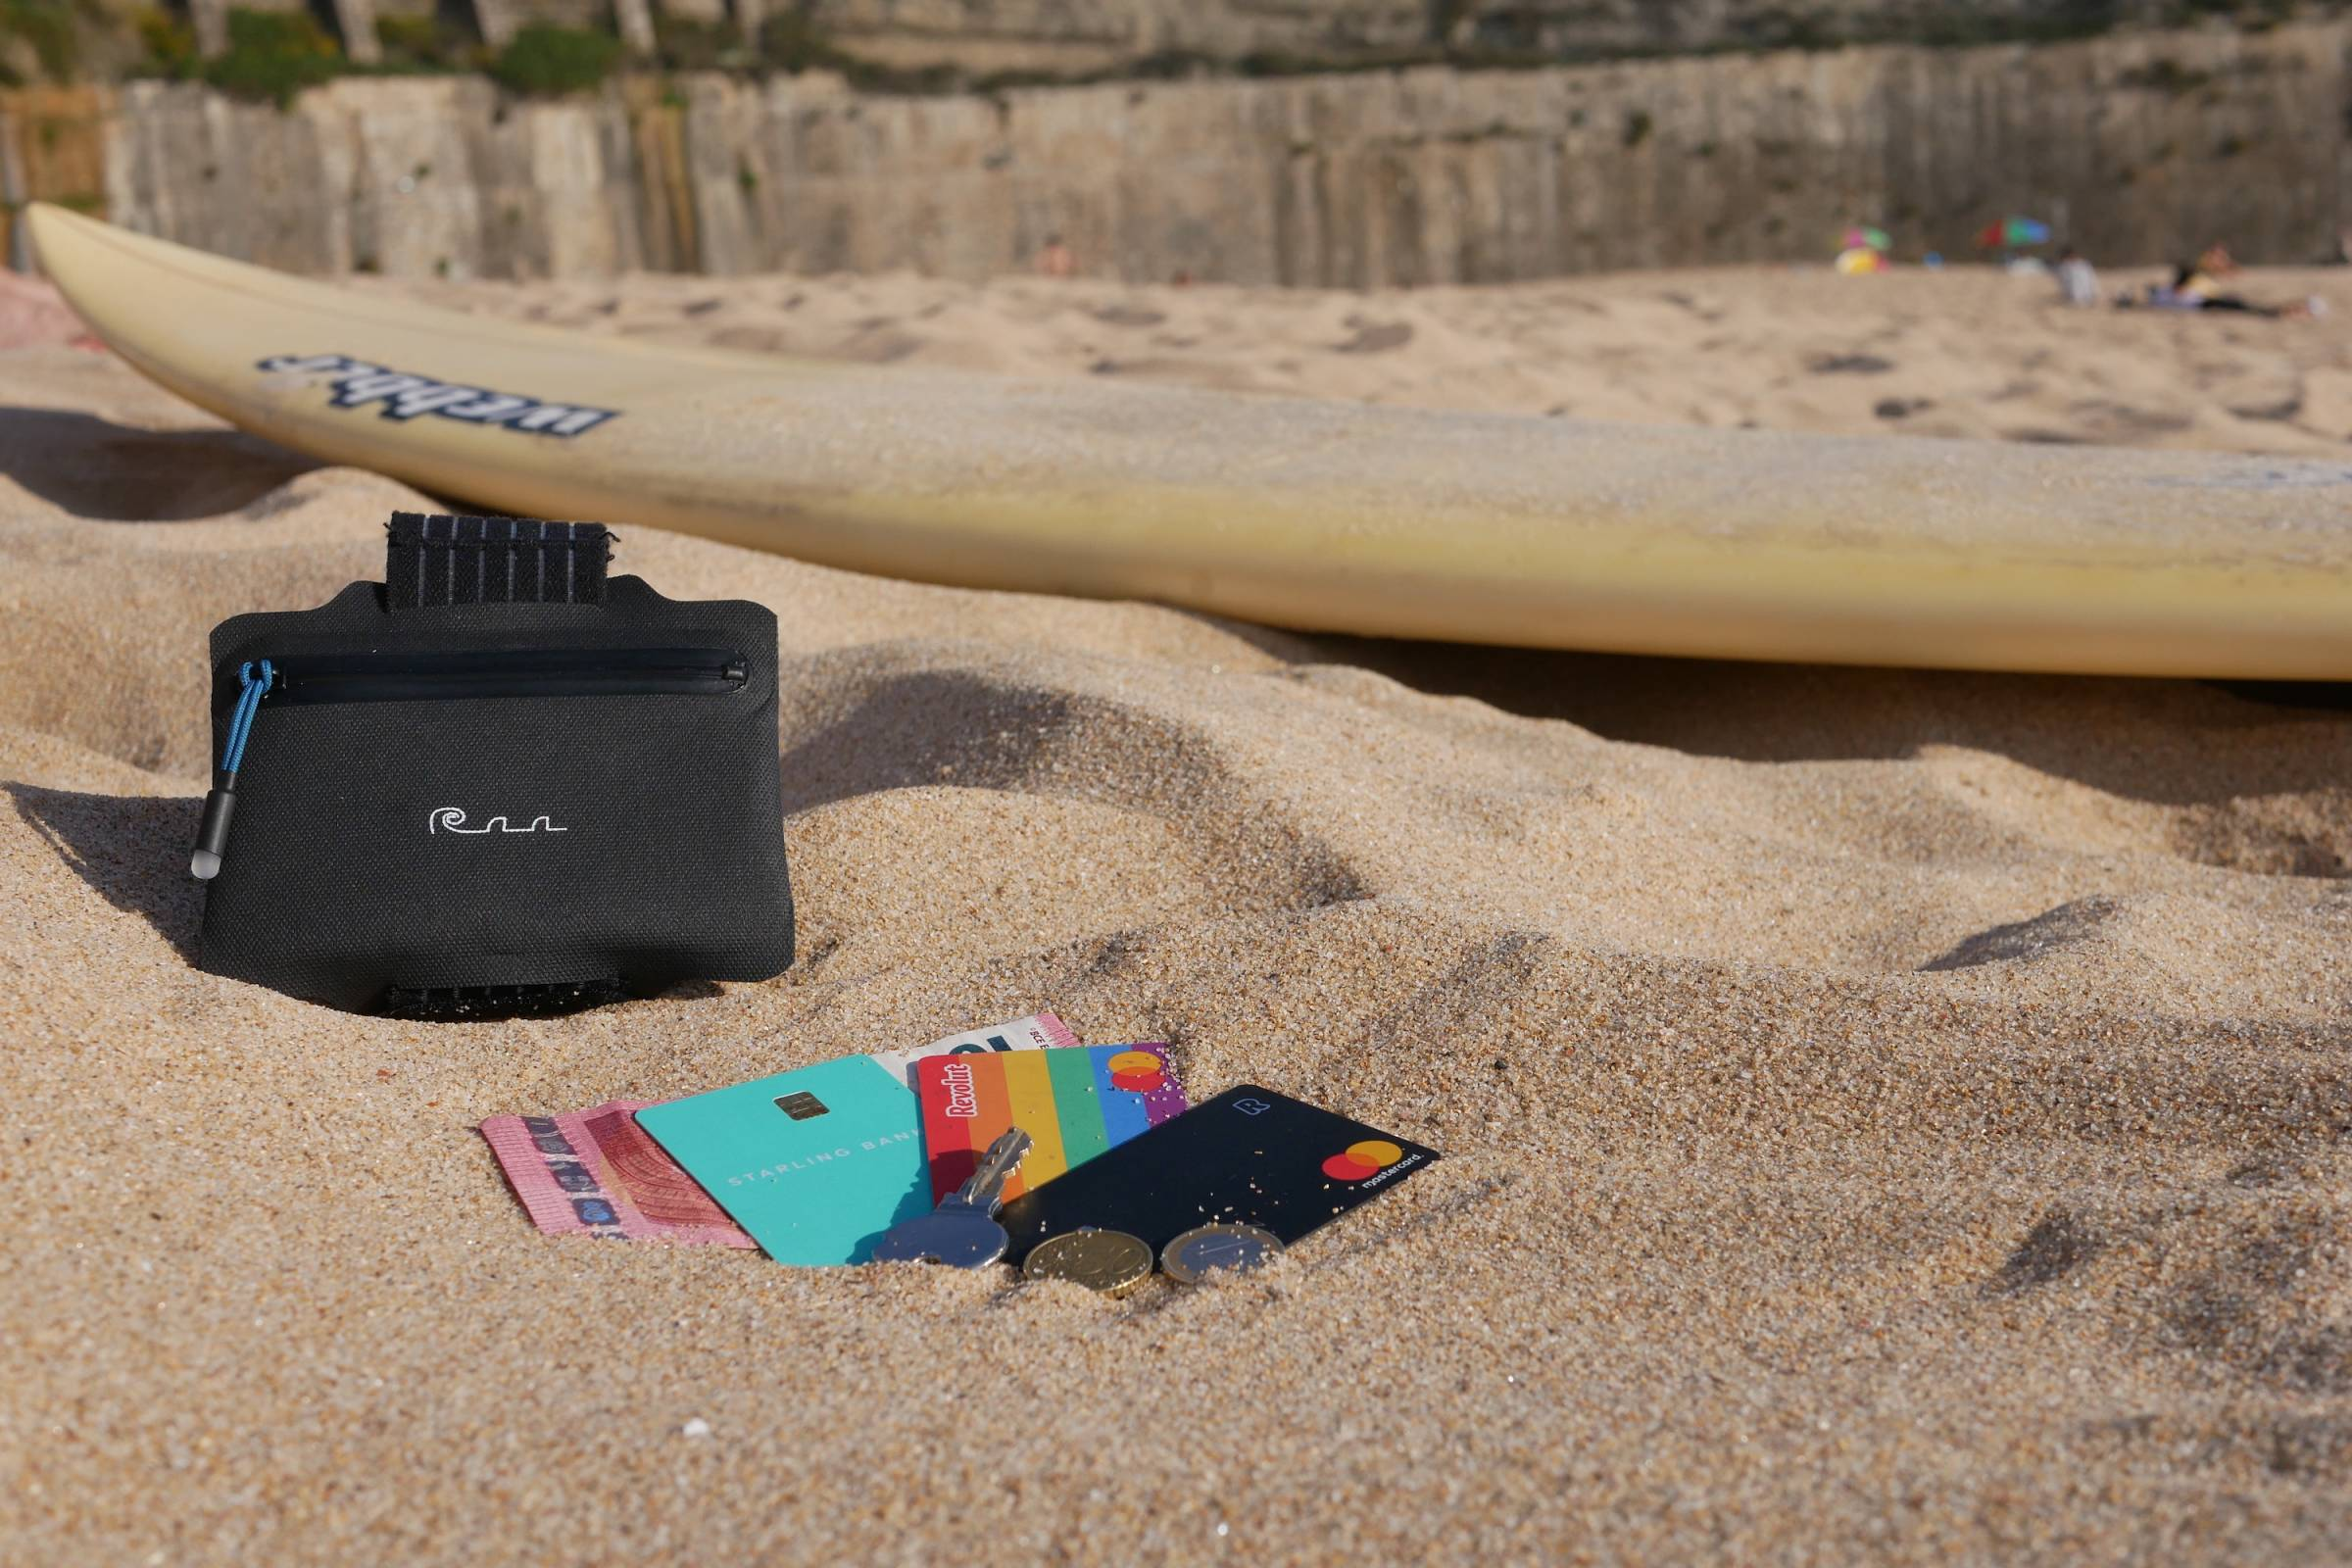 a waterproof wallet and fan of cards laid out on sandy beach